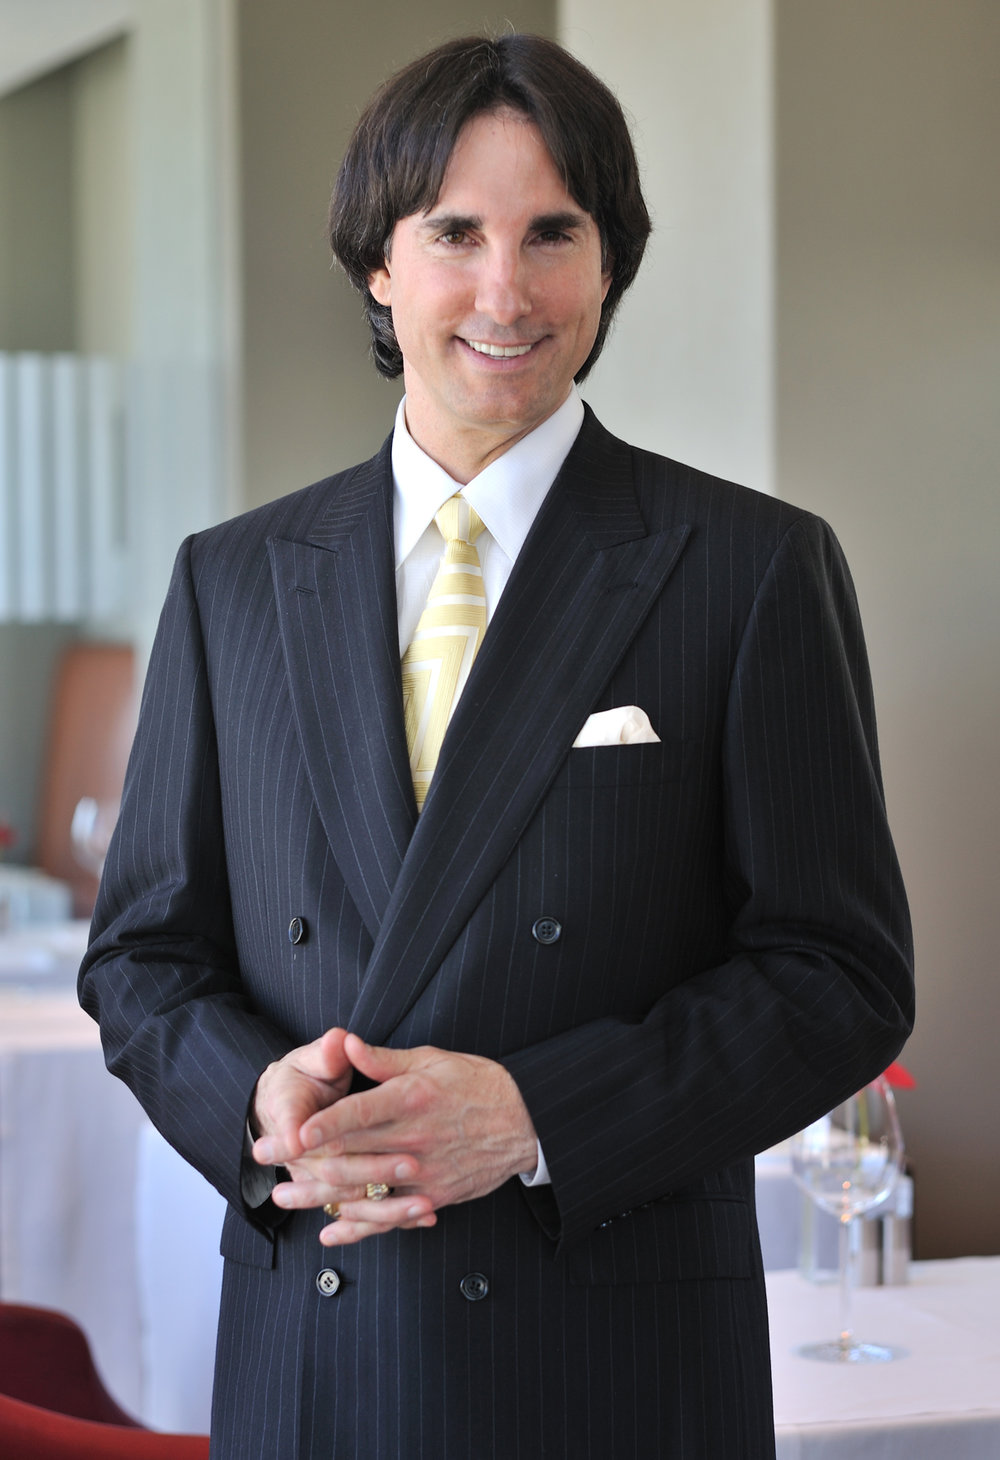 International Speaker, Leadership and Performance Specialist. Founder of the Demartini Institute